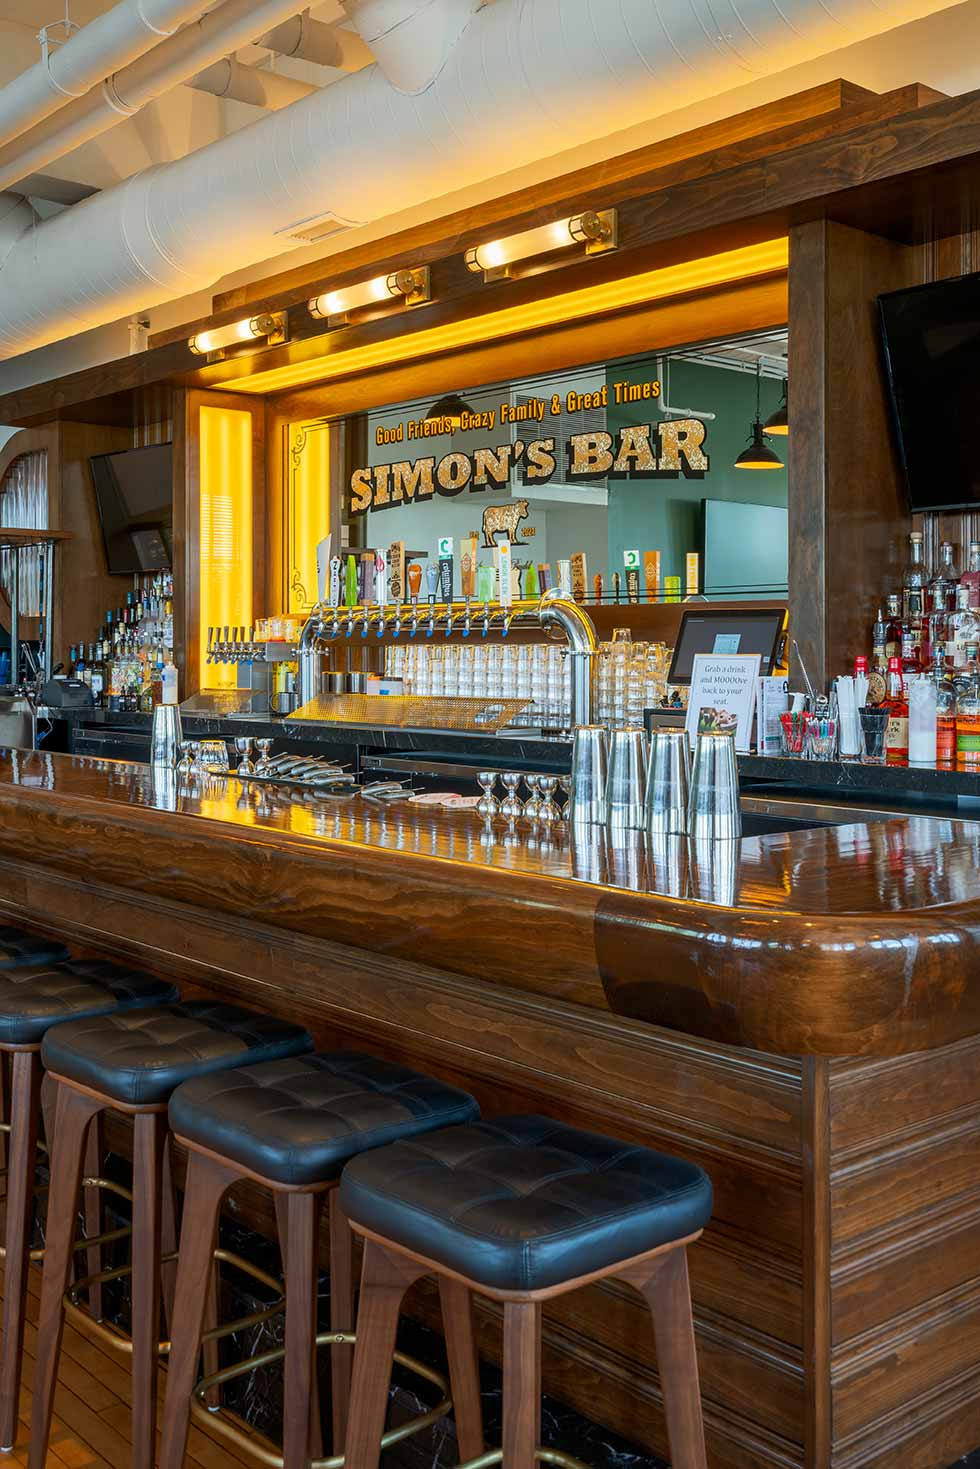 Simon's Bar with long wooden bar and stools.